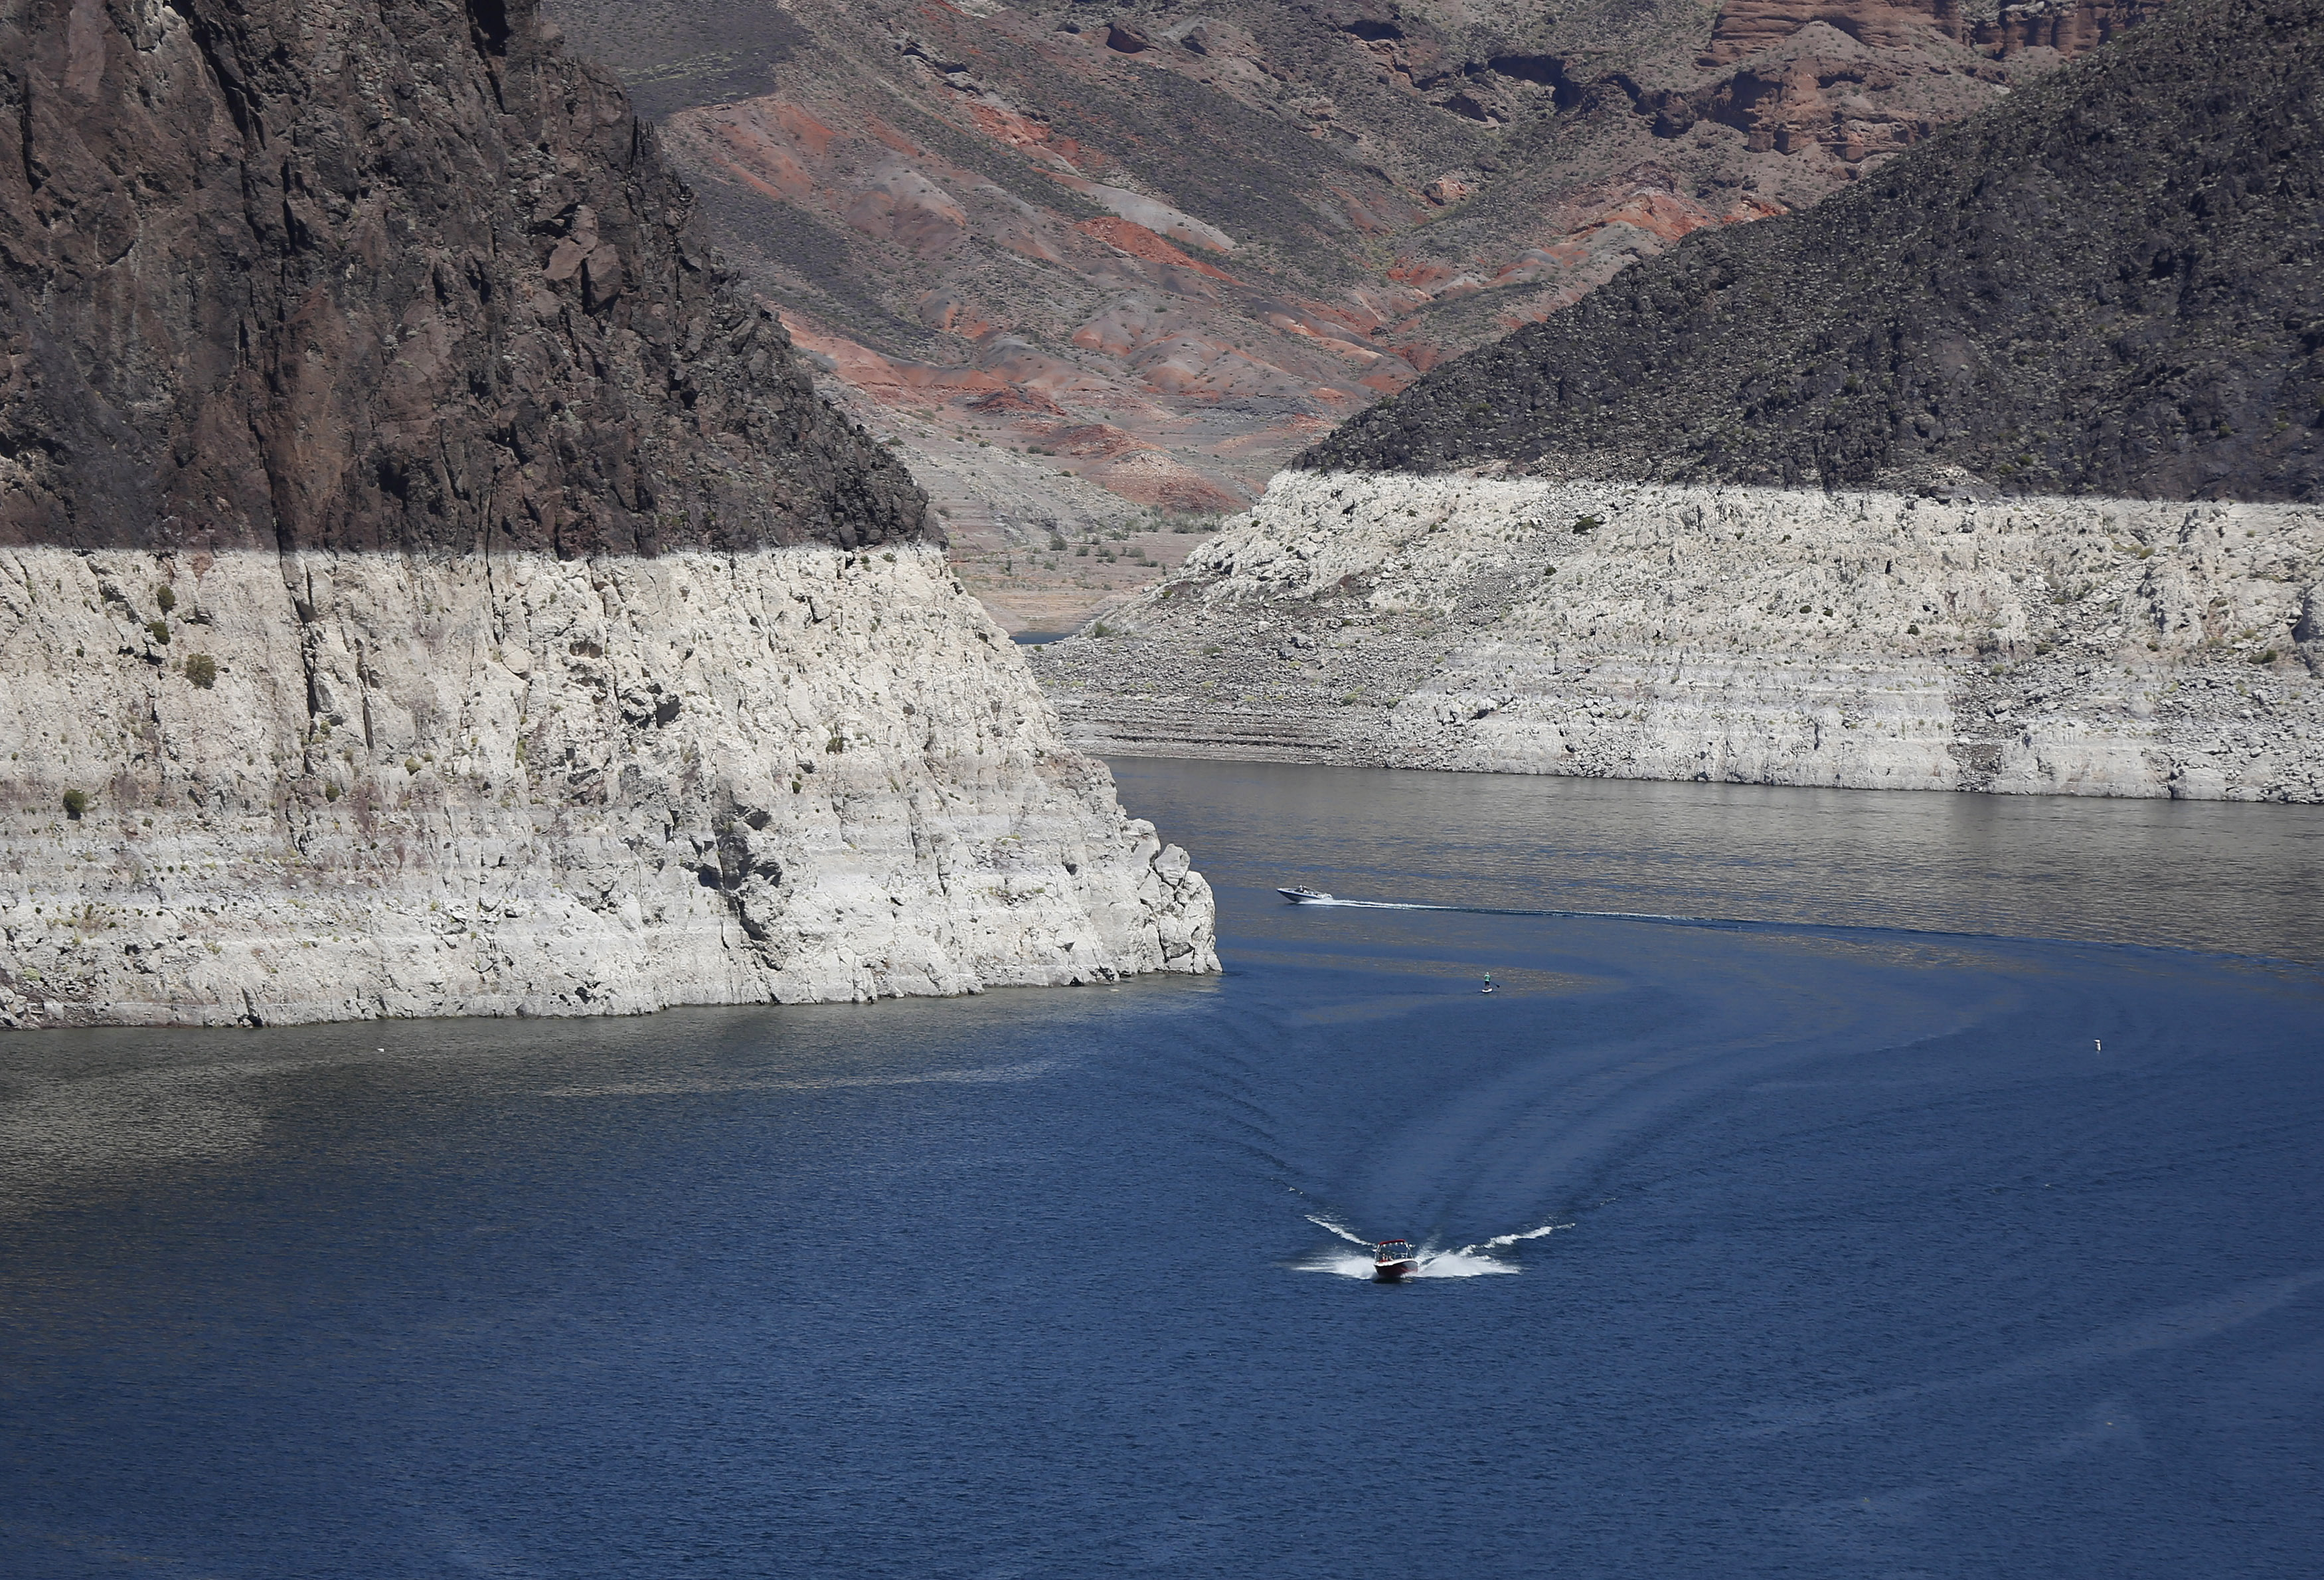 Lake Mead 2015: Photos Show Water Level Nearing Record Low ...